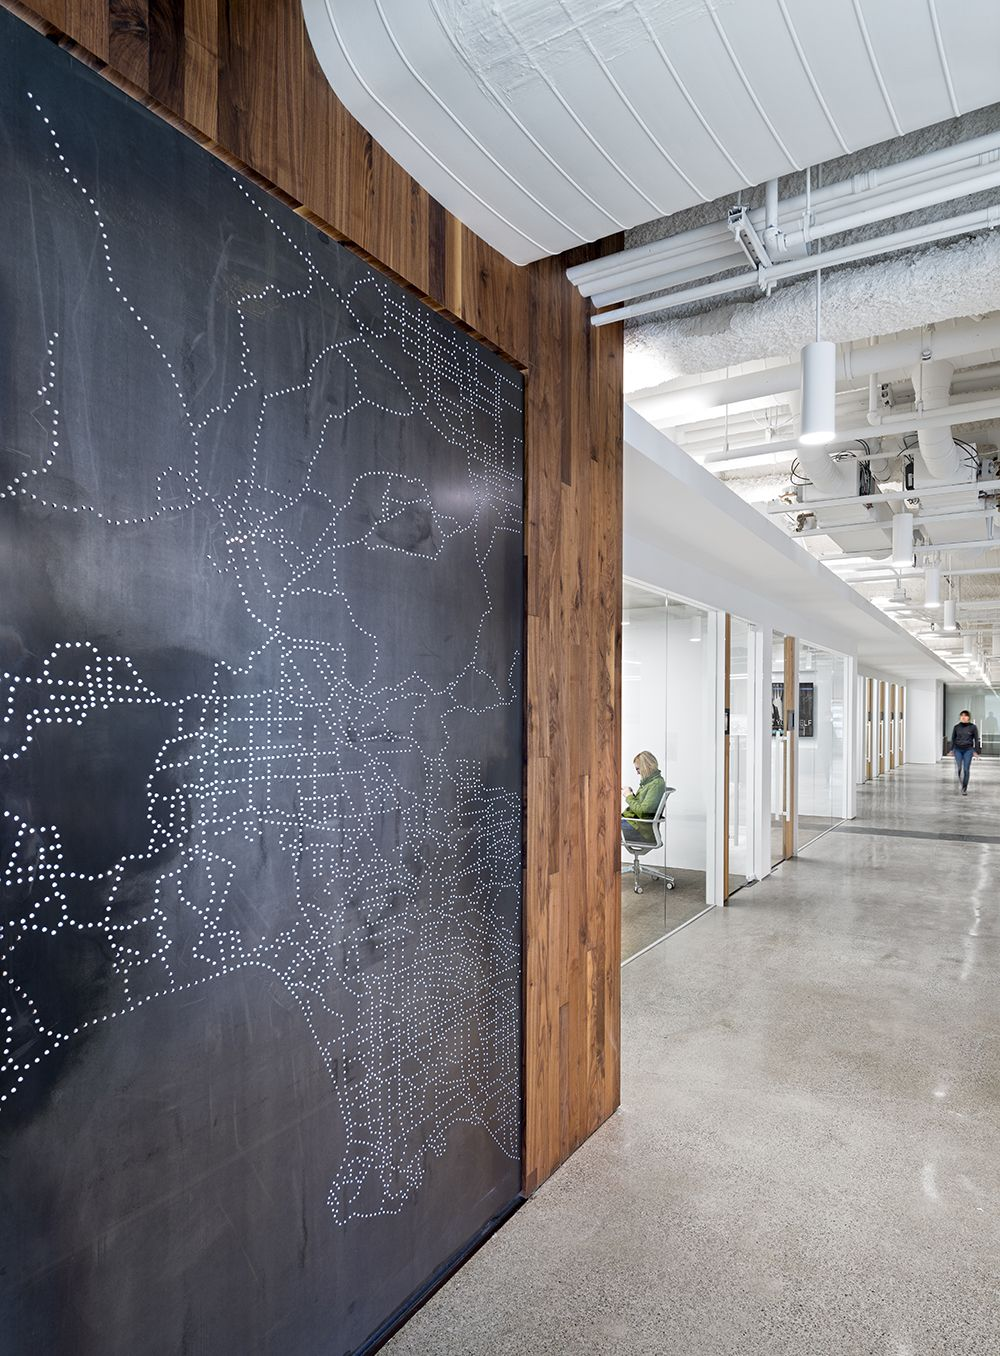 1000 images about creative office on pinterest office designs open office and creative office space bp castrol office design 5